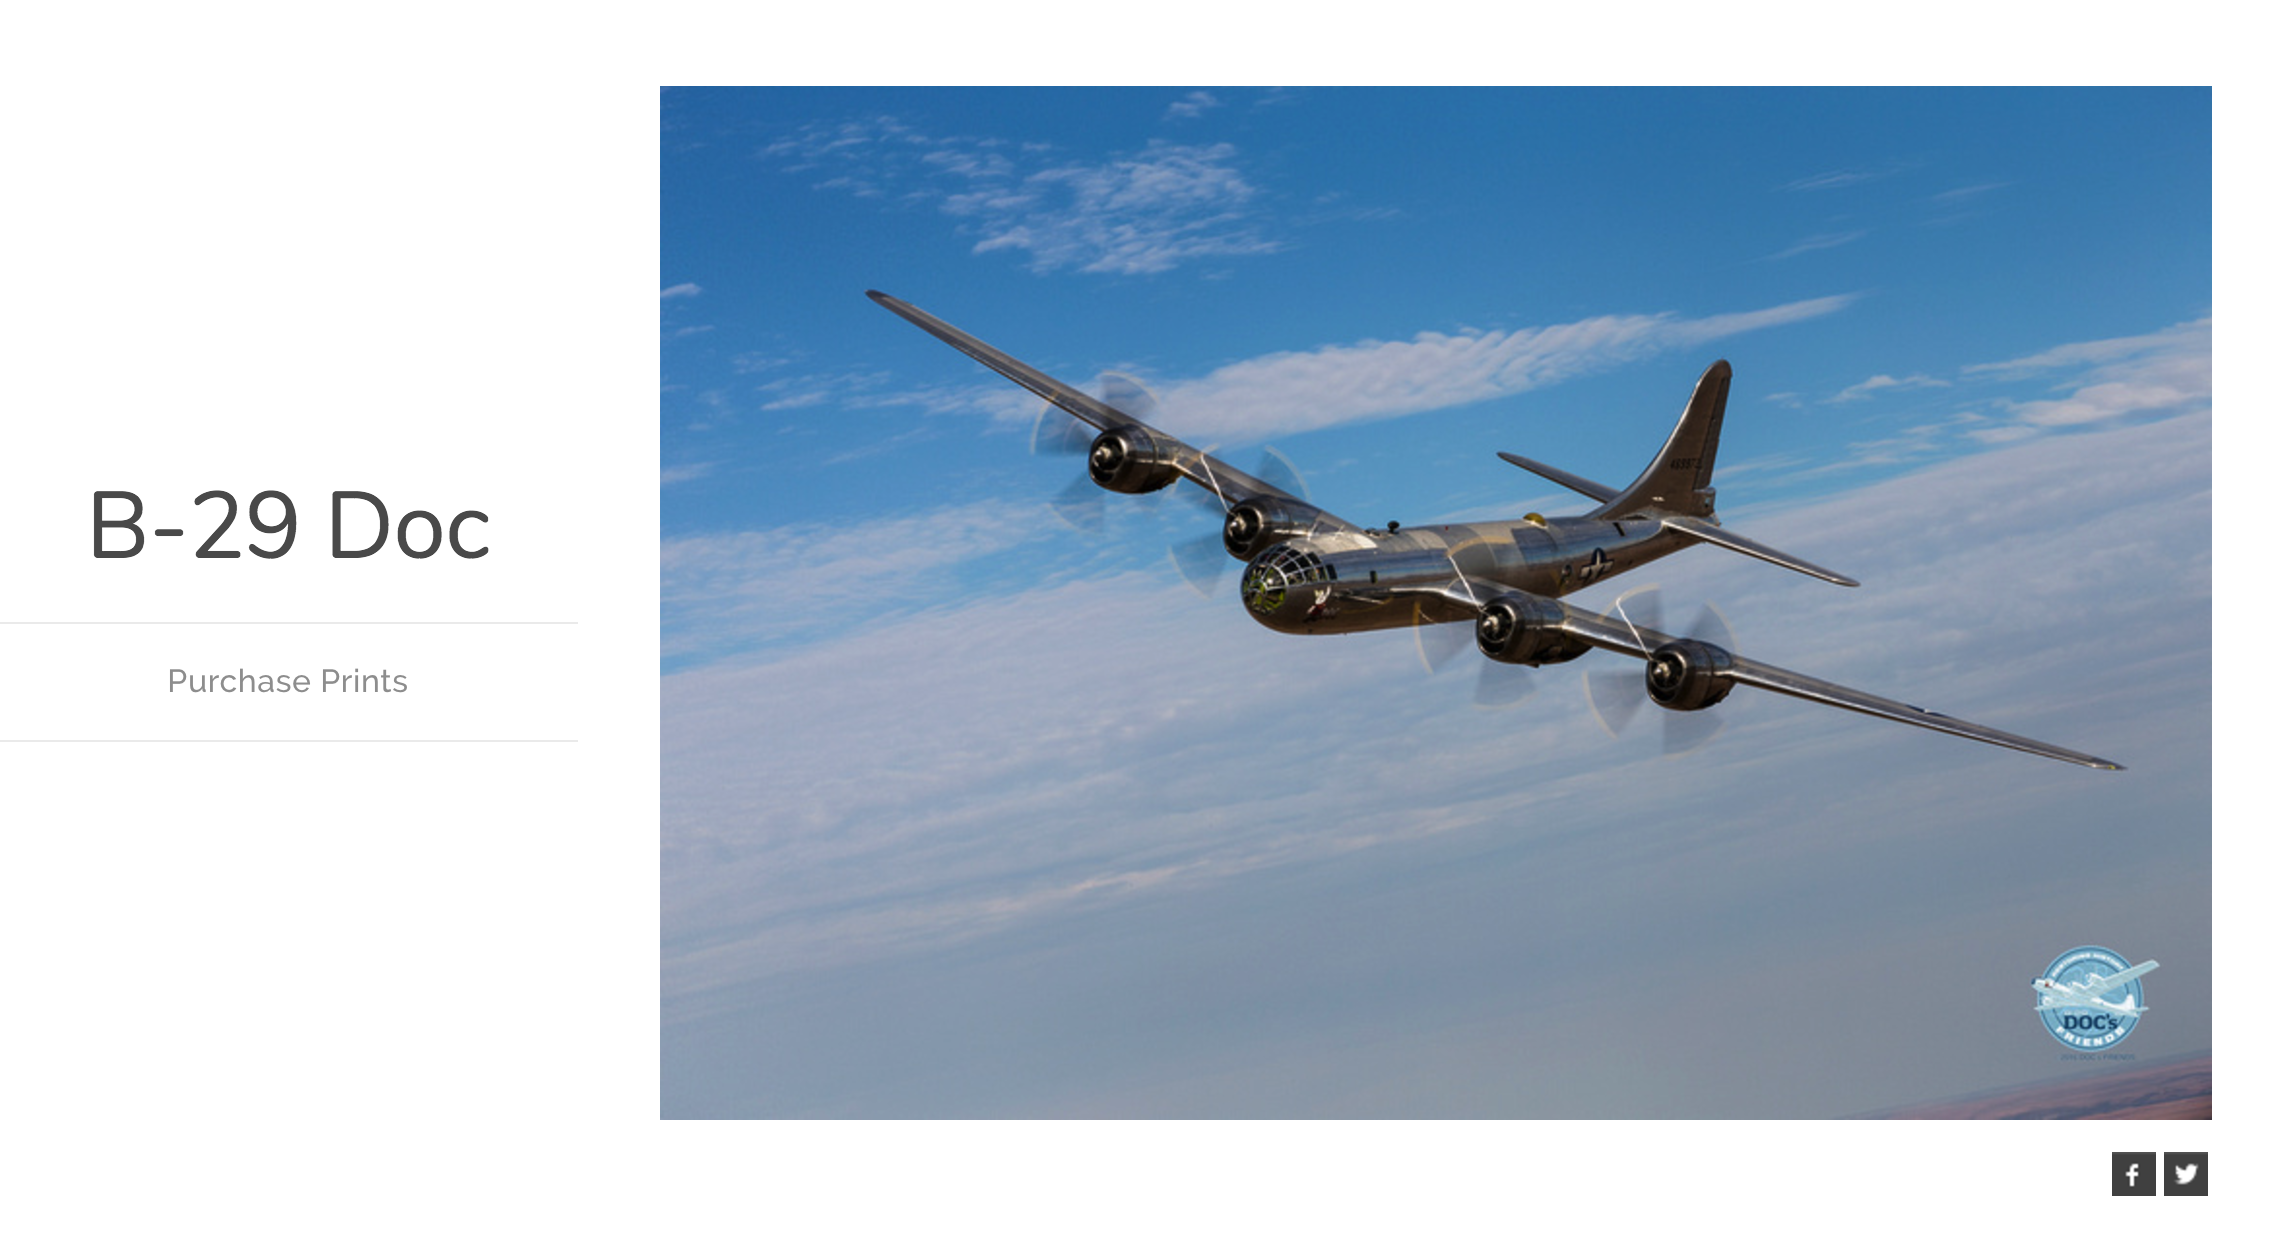 Purchase exclusive B-29 Doc photo prints